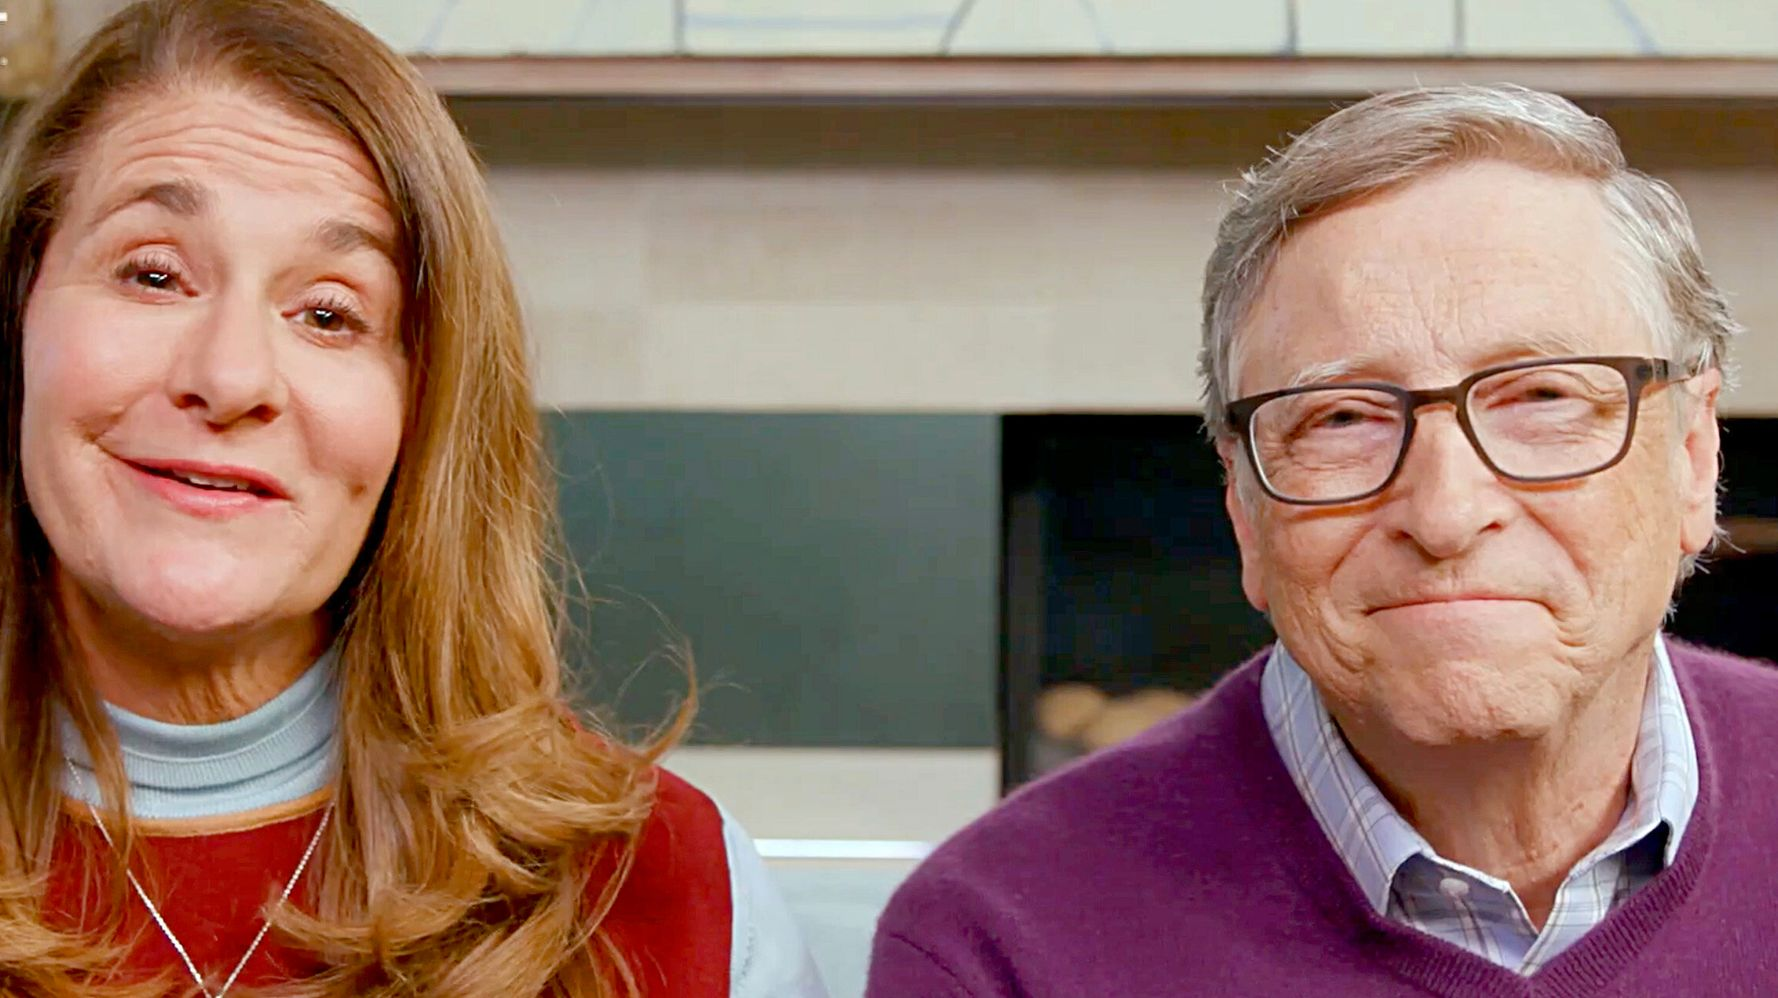 Bill And Melinda Gates Warn Of 'Immunity Inequality' As COVID-19 Vaccines Roll Out